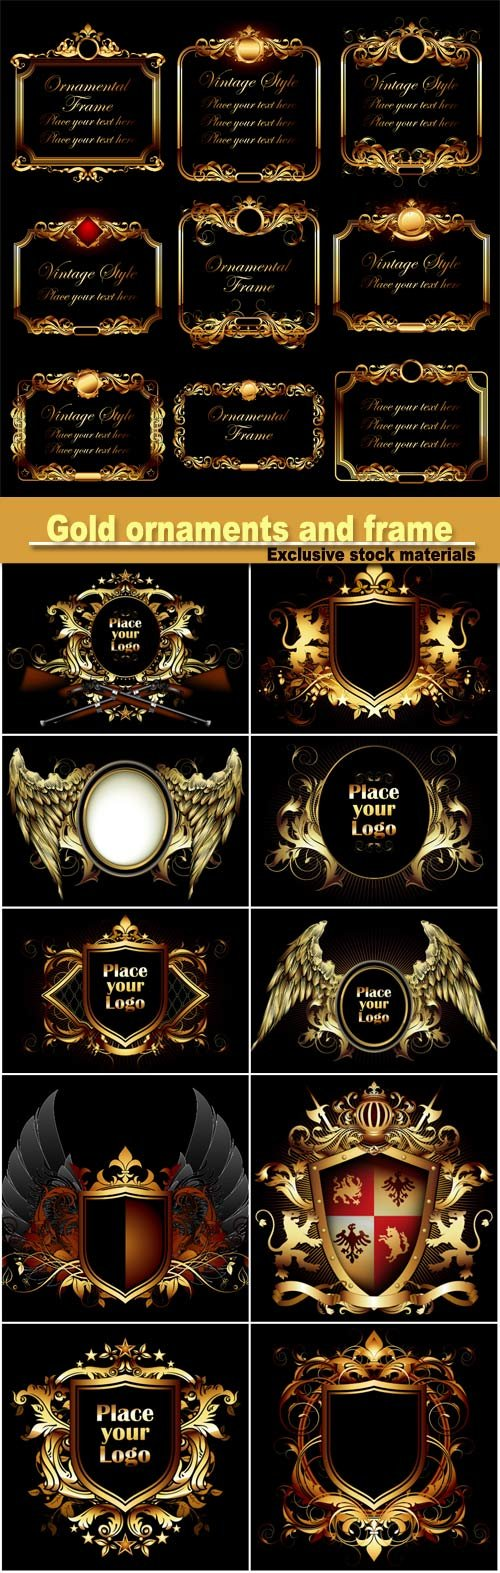 Gold ornaments and frame vector